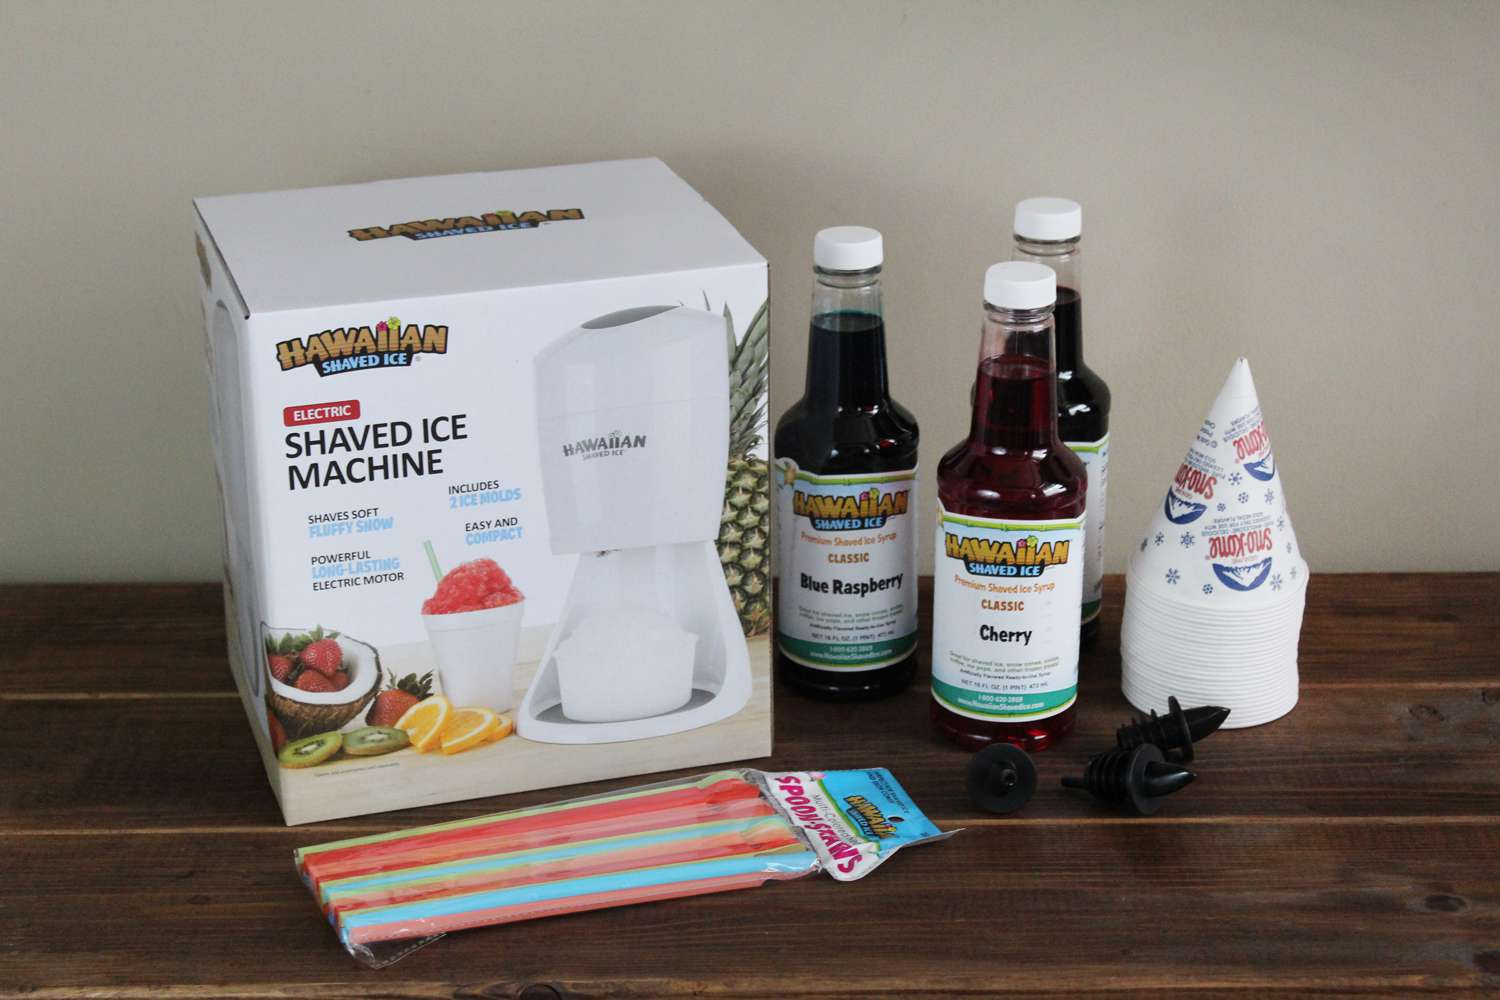 Hawaiian Shaved Ice Machine Party Package